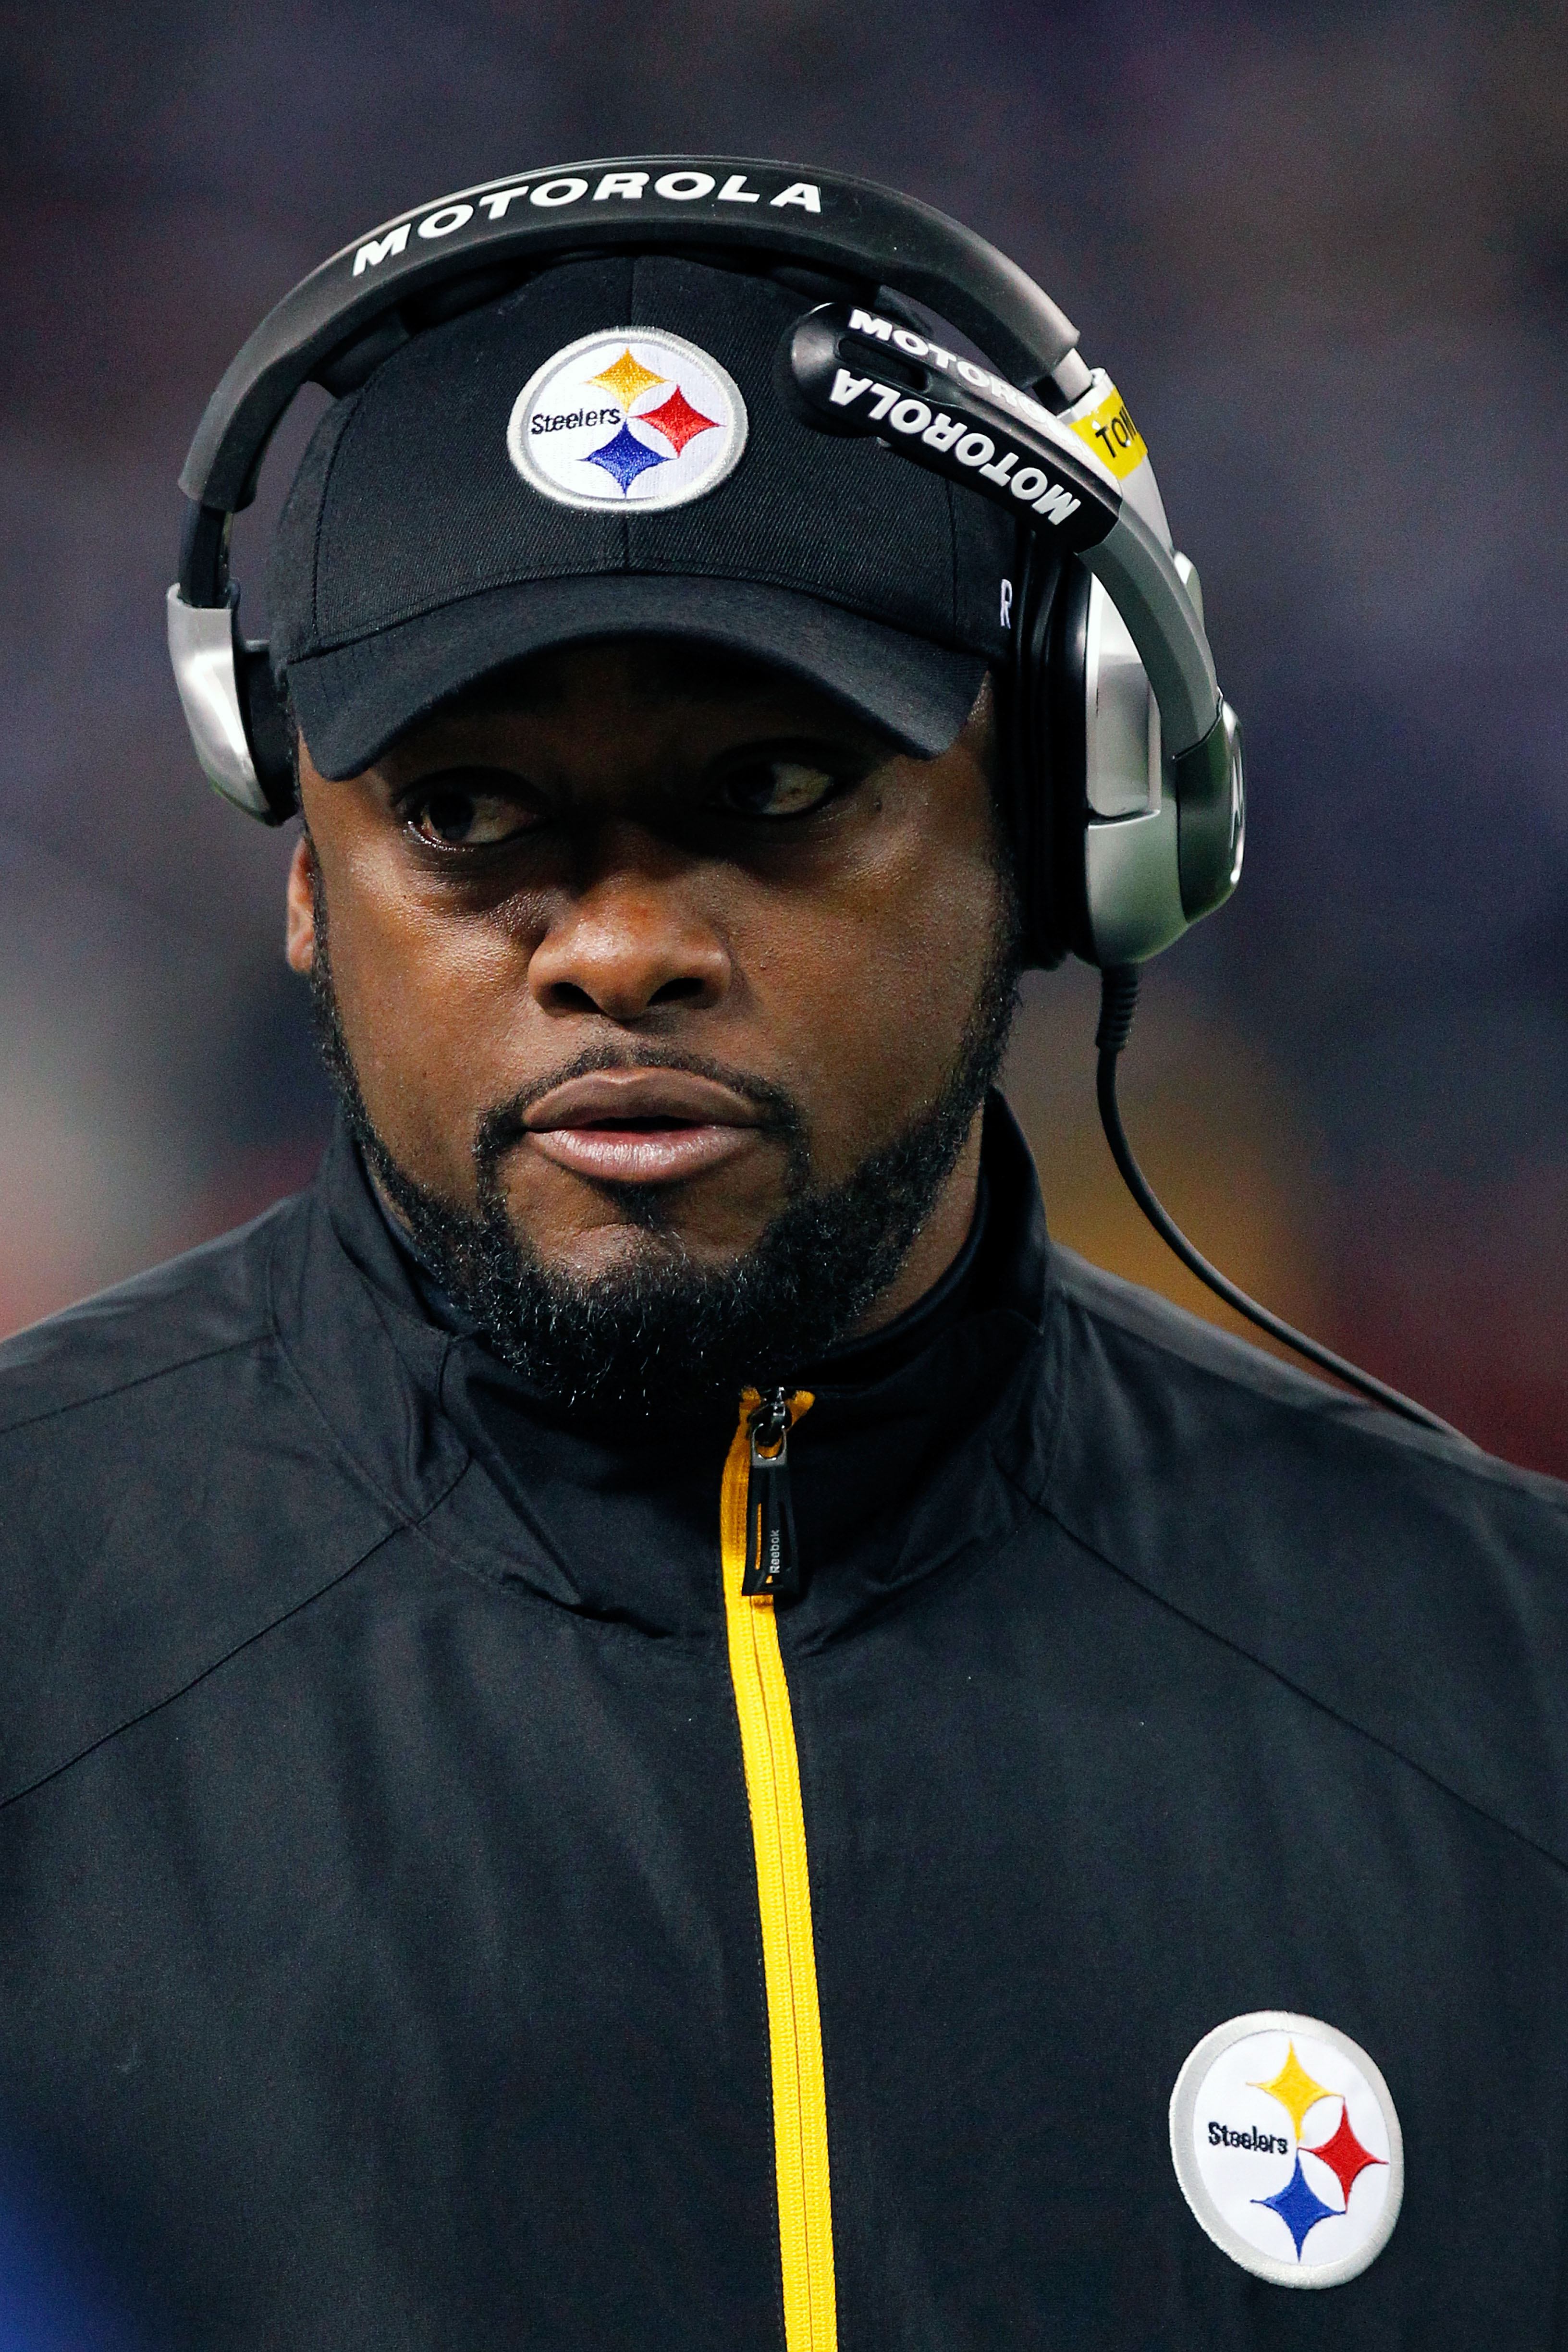 BALTIMORE, MD - DECEMBER 05:  Mike Tomlin head coach of the Pittsburgh Steelers looks on during the game against the Baltimore Ravens at M&T Bank Stadium on December 5, 2010 in Baltimore, Maryland. Pittsburgh won 13-10.  (Photo by Geoff Burke/Getty Images